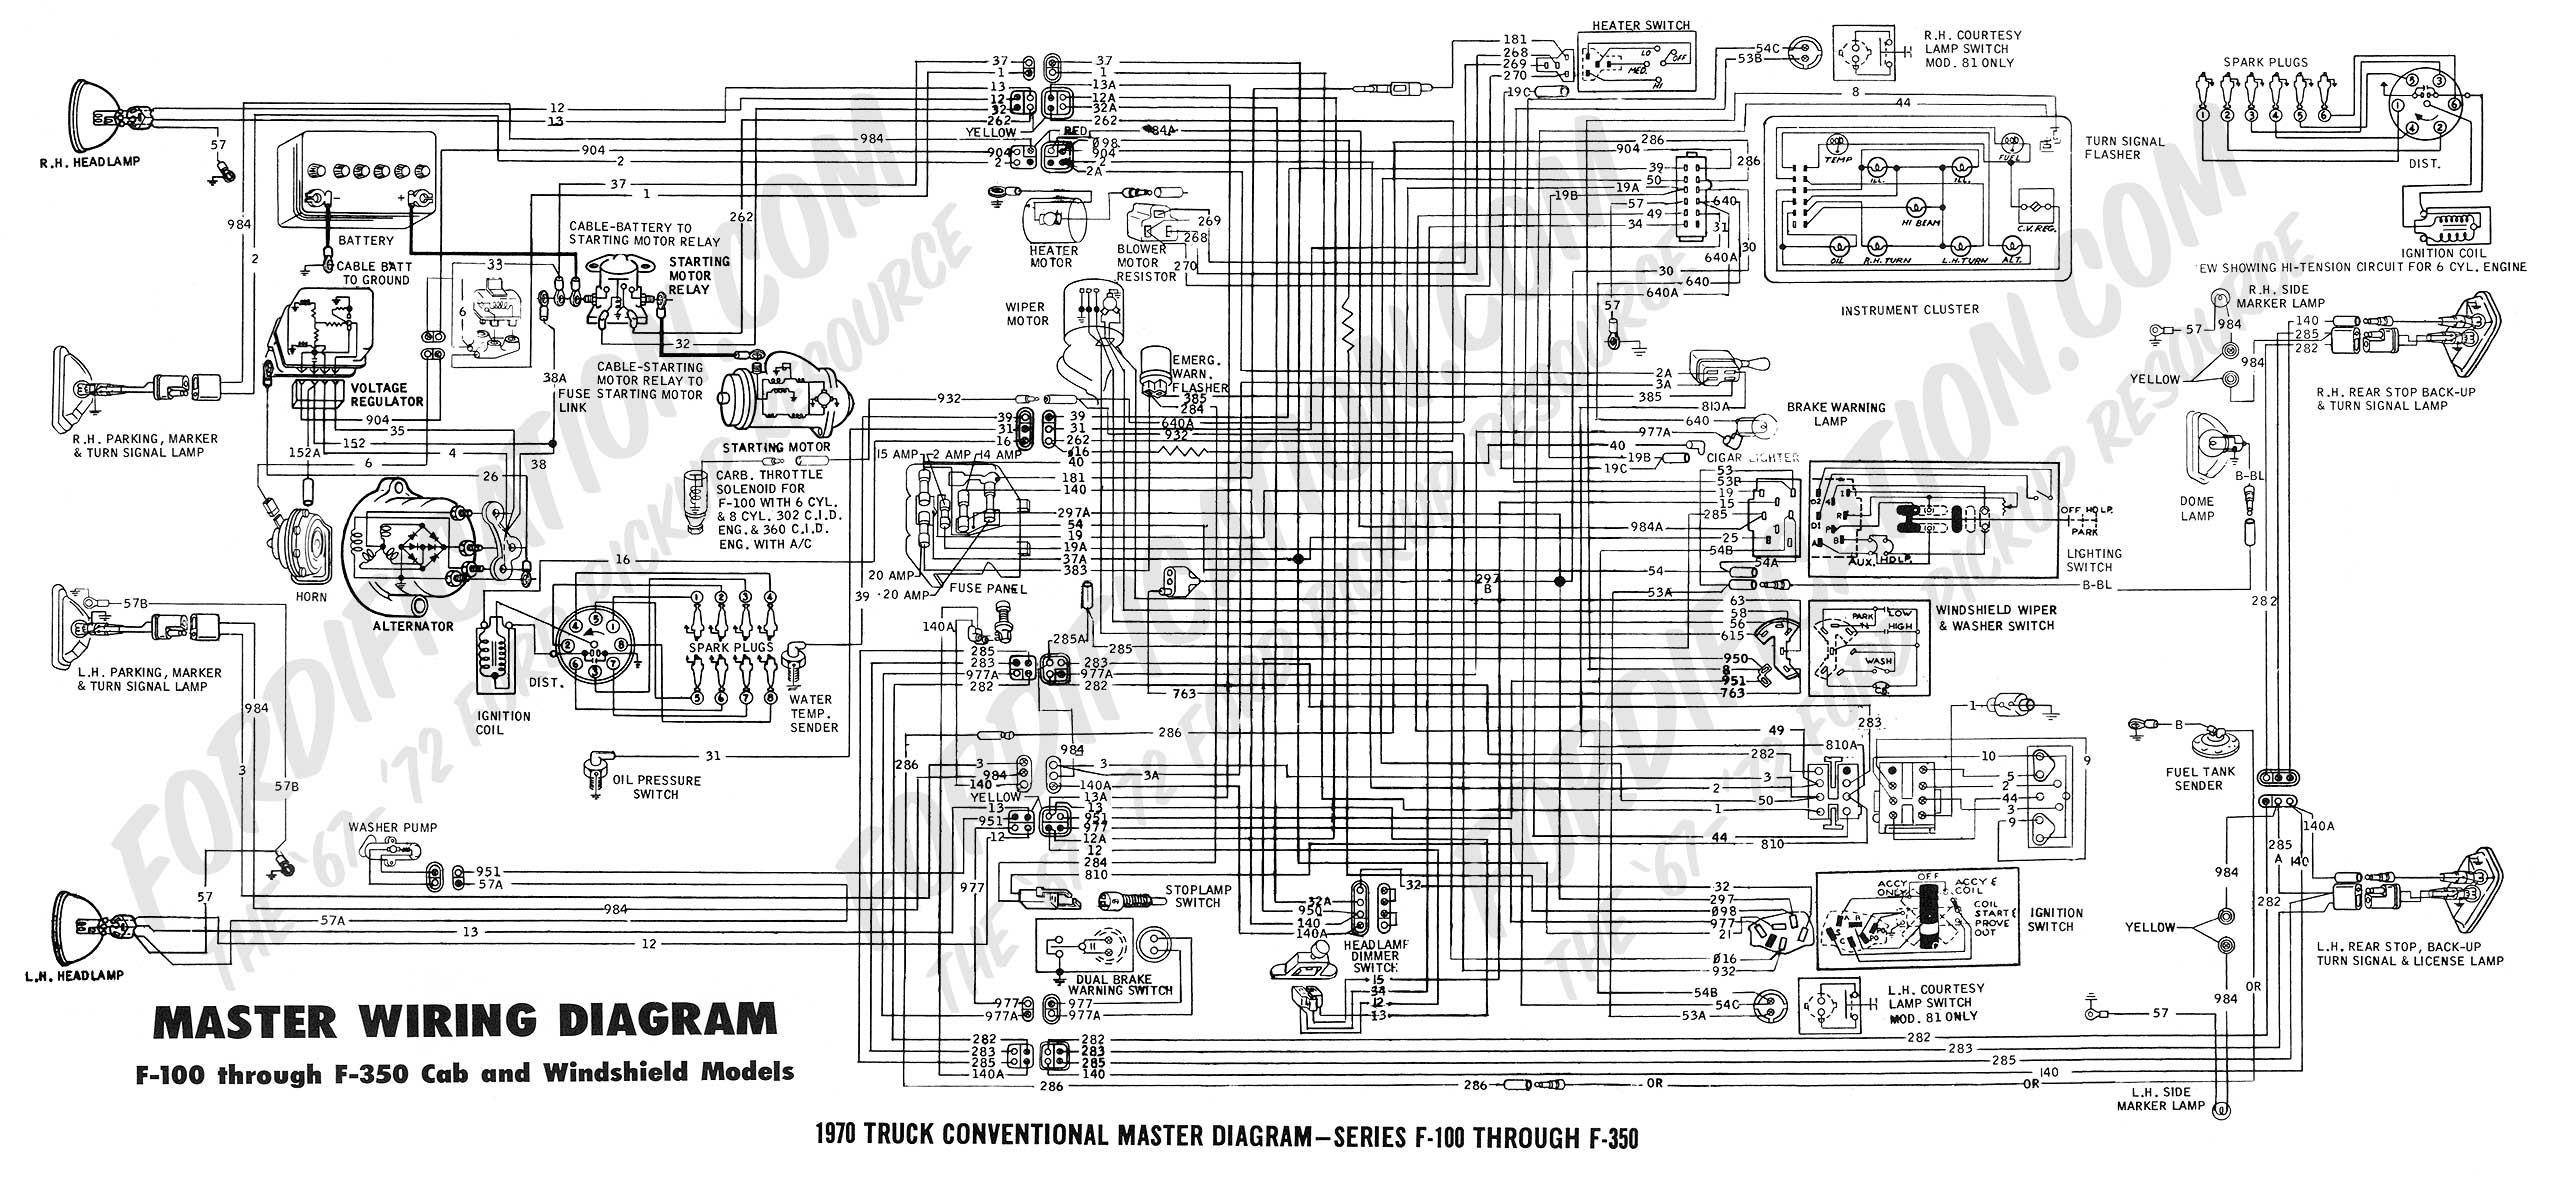 wiring diagram 70_master f450 wiring diagram f250 wiring diagram 2016 \u2022 wiring diagrams j Ford Ignition Wiring Diagram at bayanpartner.co